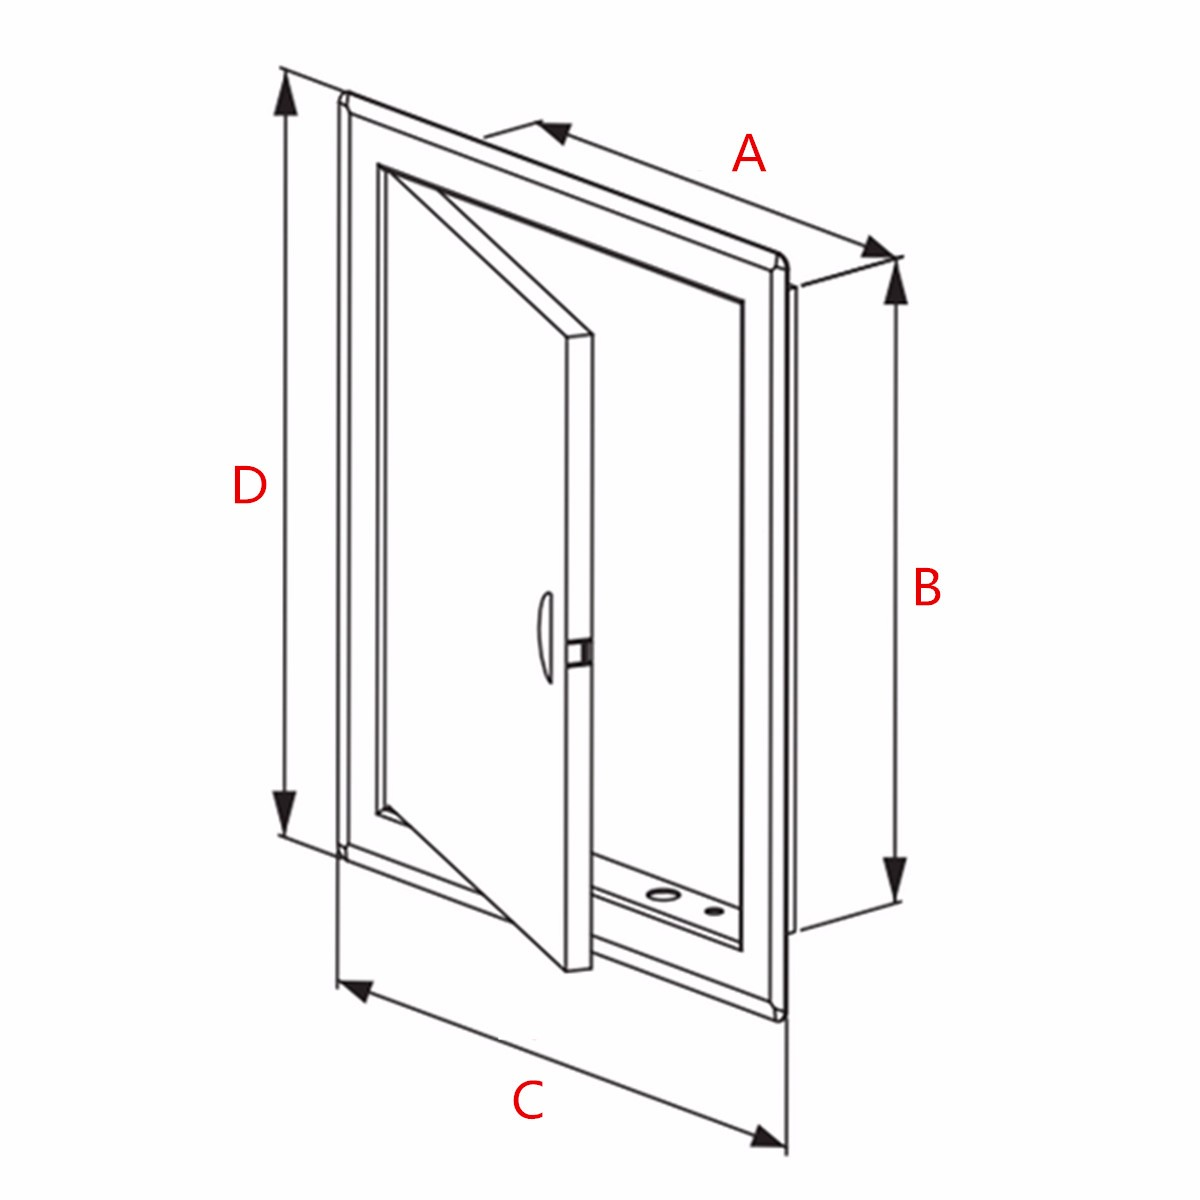 ... c5c7bef7-3d7f-4bf4-ba95-03d51c7c677e.jpg ...  sc 1 st  Alexnld.com & White ABS Plastic Access Panel Inspection Door Revision Hatch ...